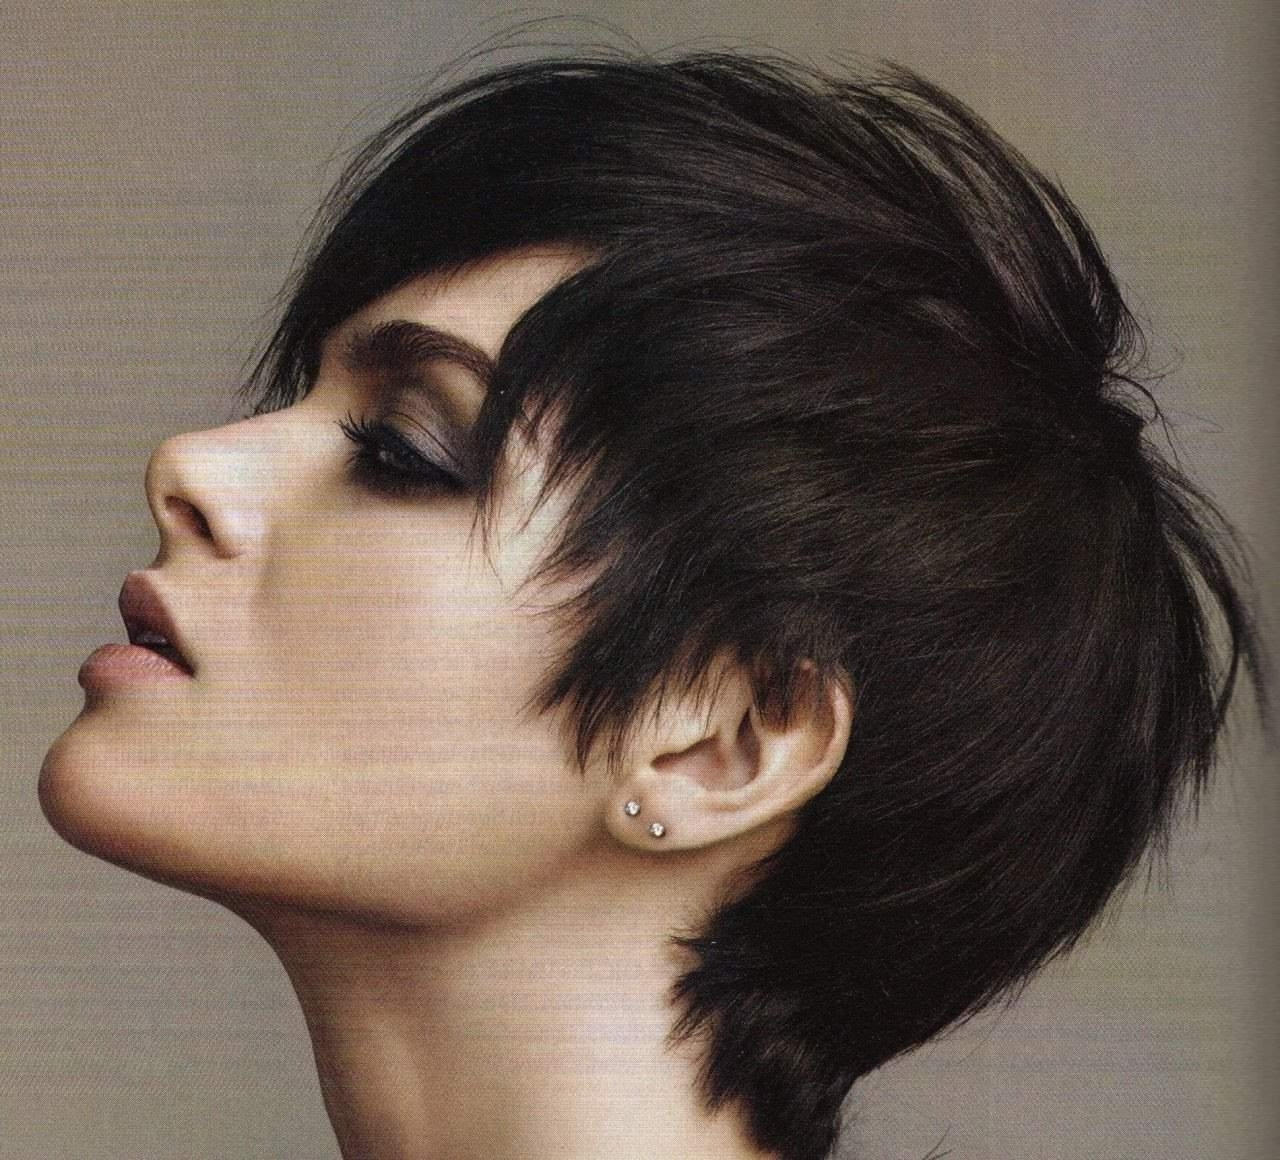 Well Liked Platinum Blonde Disheveled Pixie Hairstyles Intended For 8 Reasons You Should Get A Pixie Haircut (View 19 of 20)